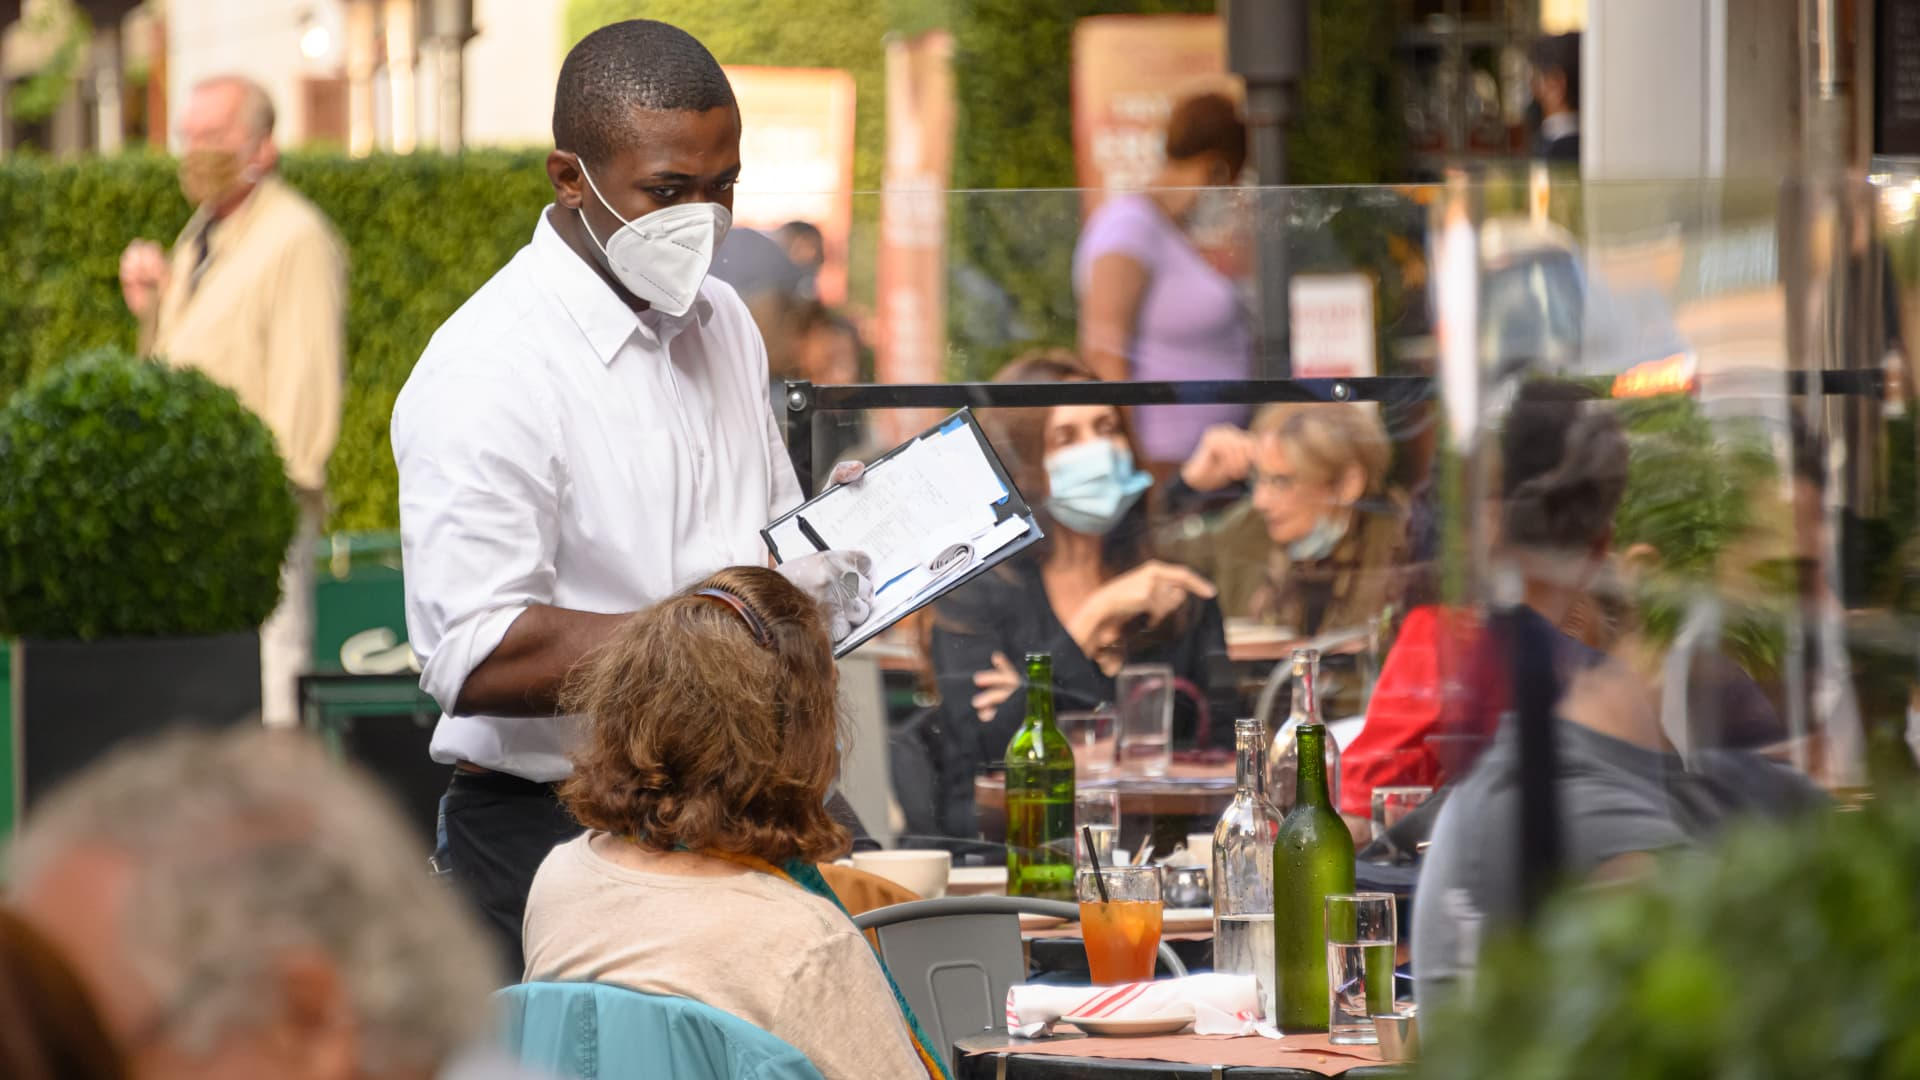 A waiter wears a face mask at a restaurant on the Upper West Side as the city continues the re-opening efforts following restrictions imposed to slow the spread of coronavirus on November 10, 2020 in New York City.